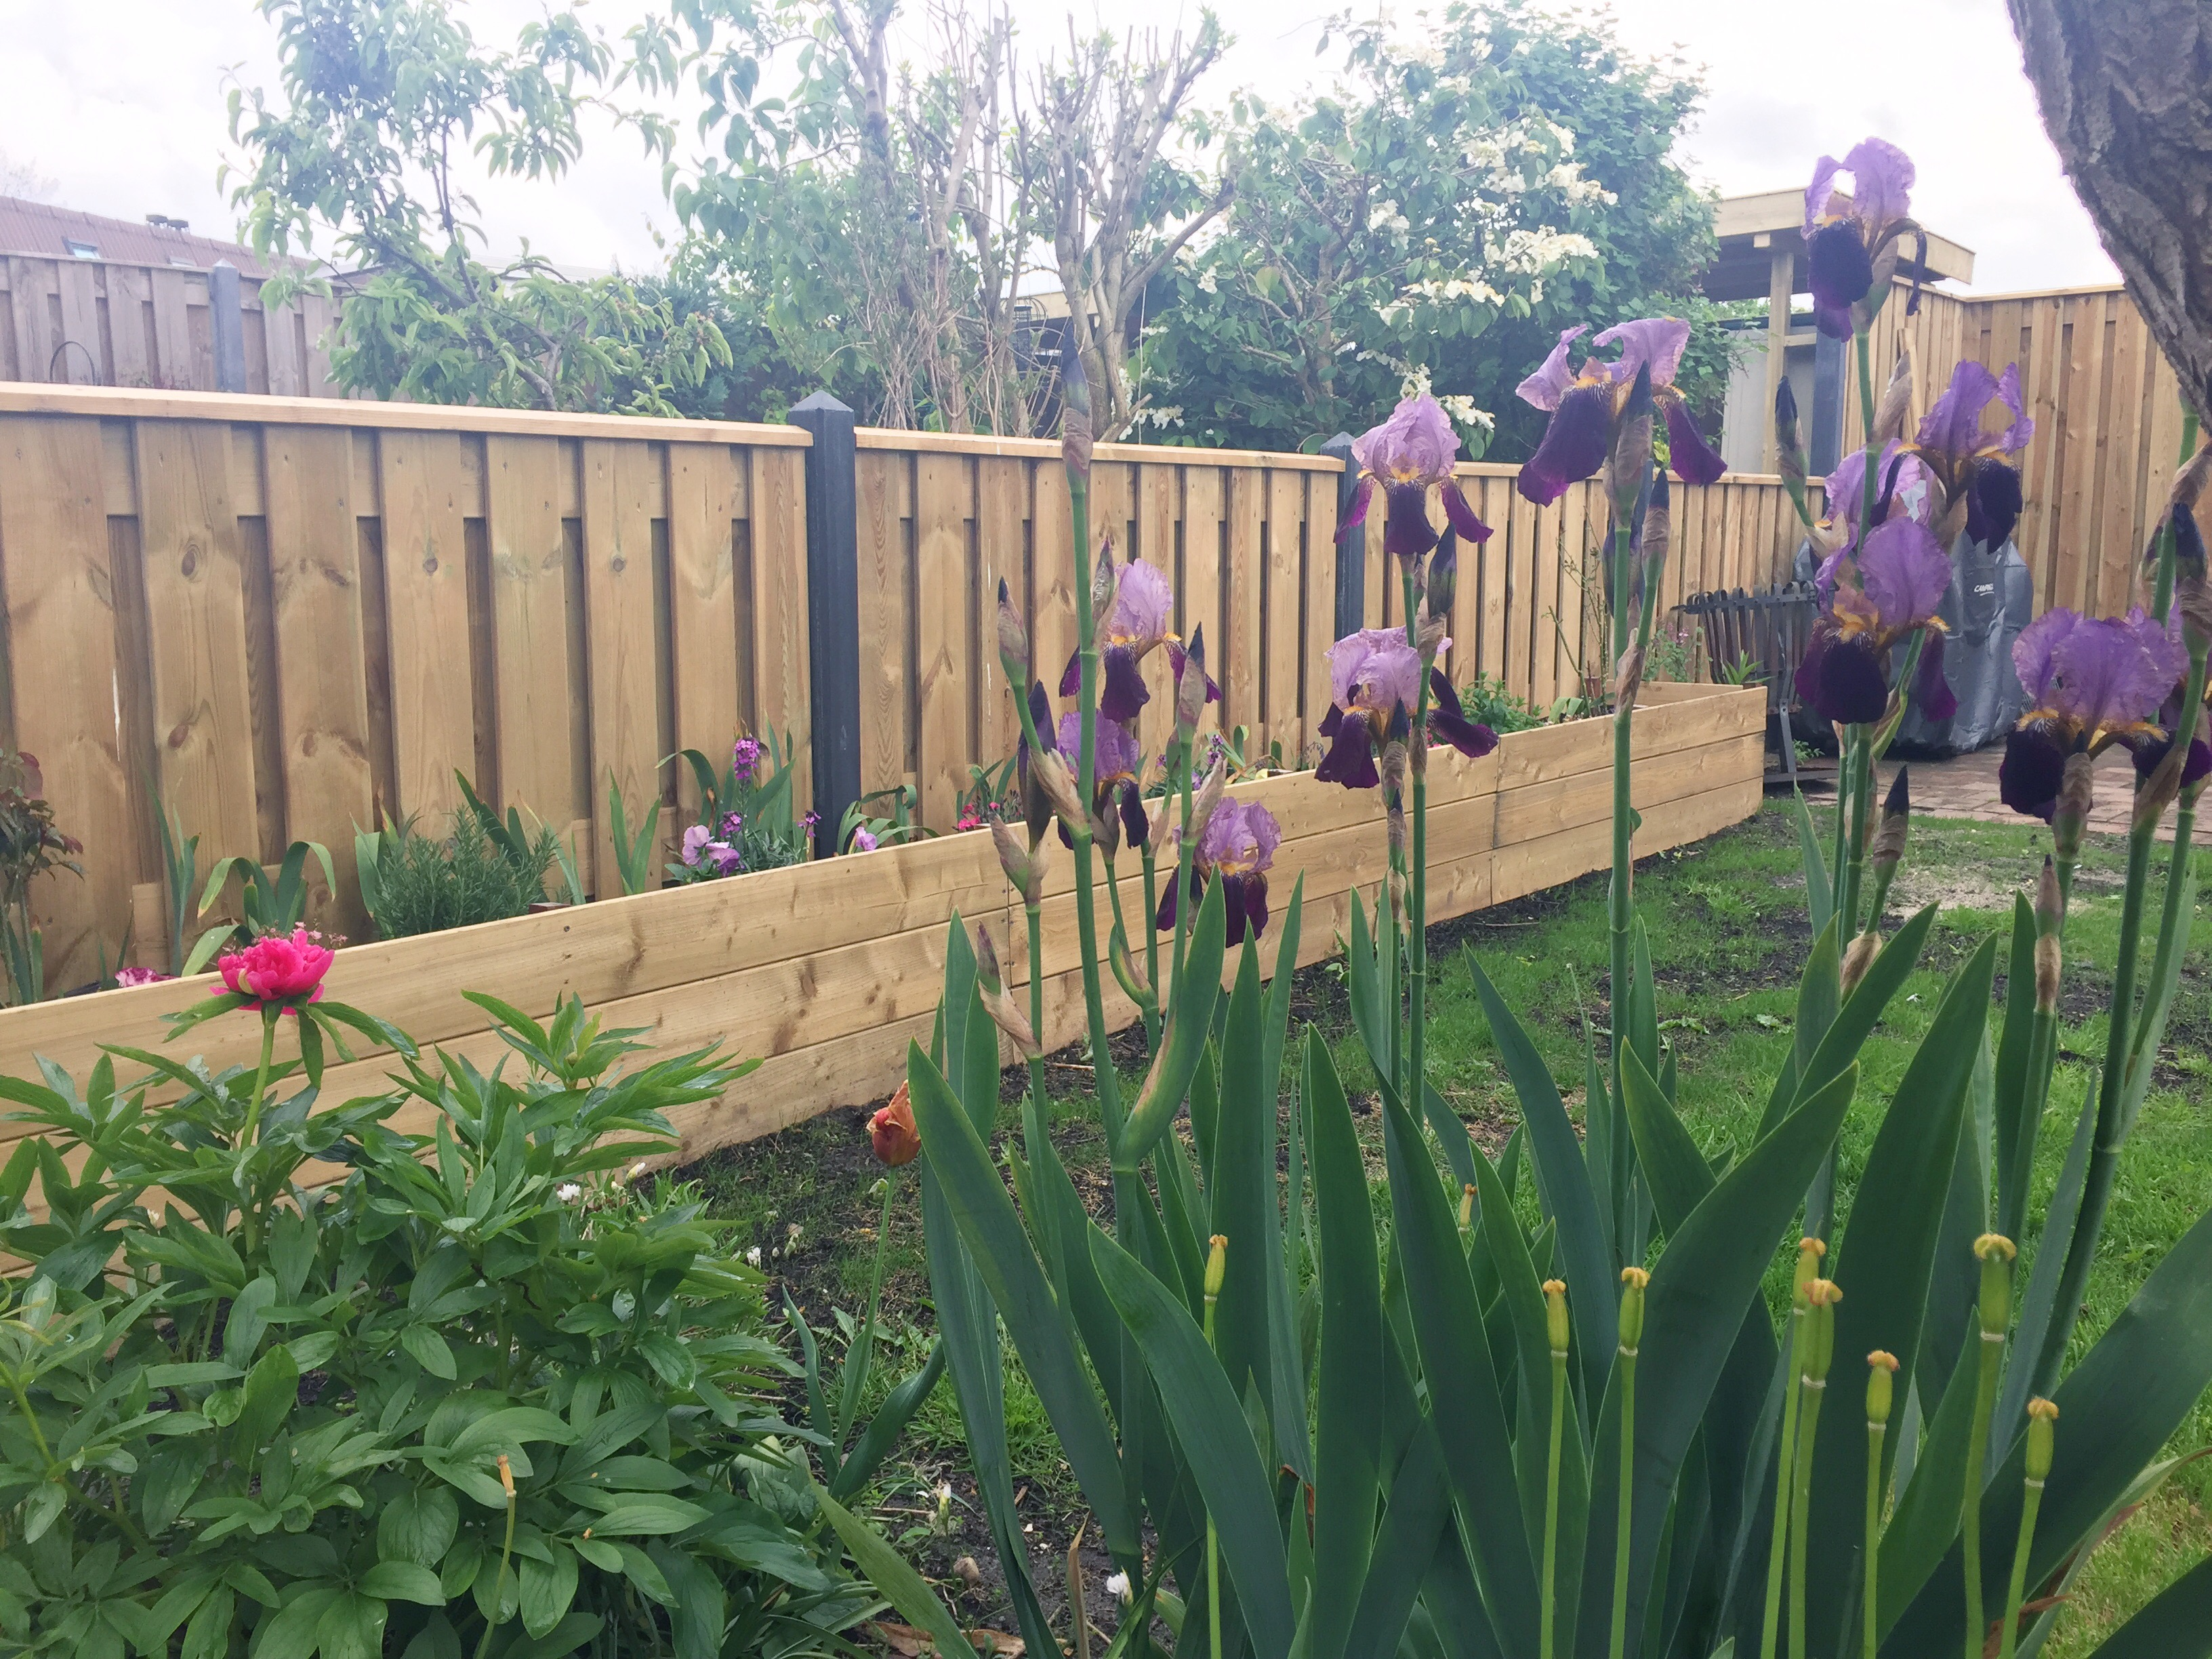 Irises blooming in the garden